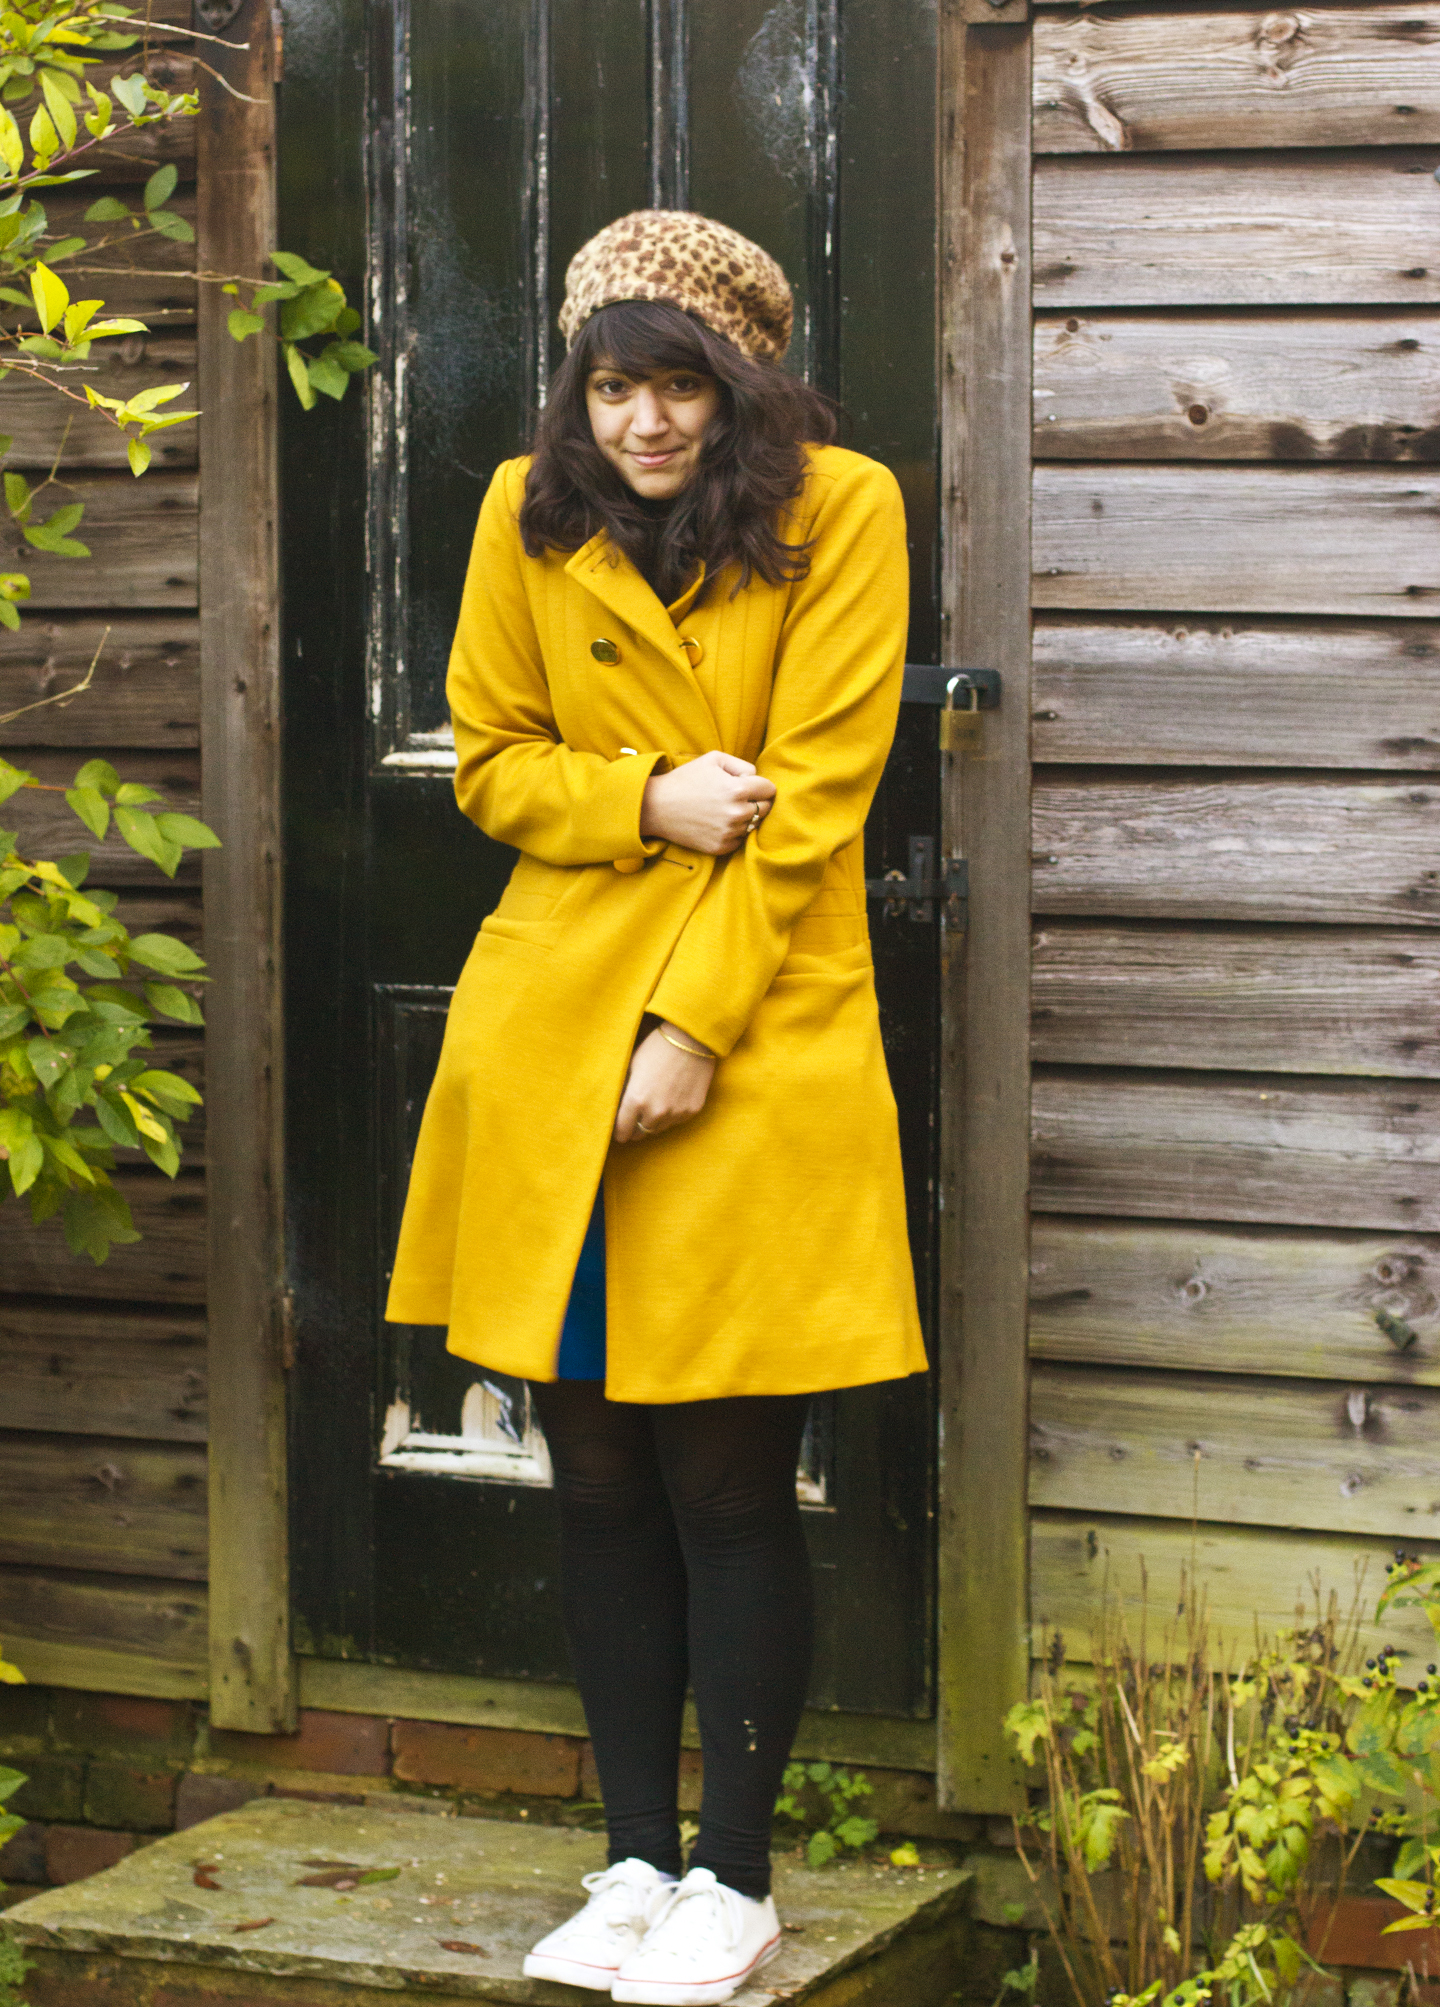 outside shed yellow mustard coat oral kiely beret